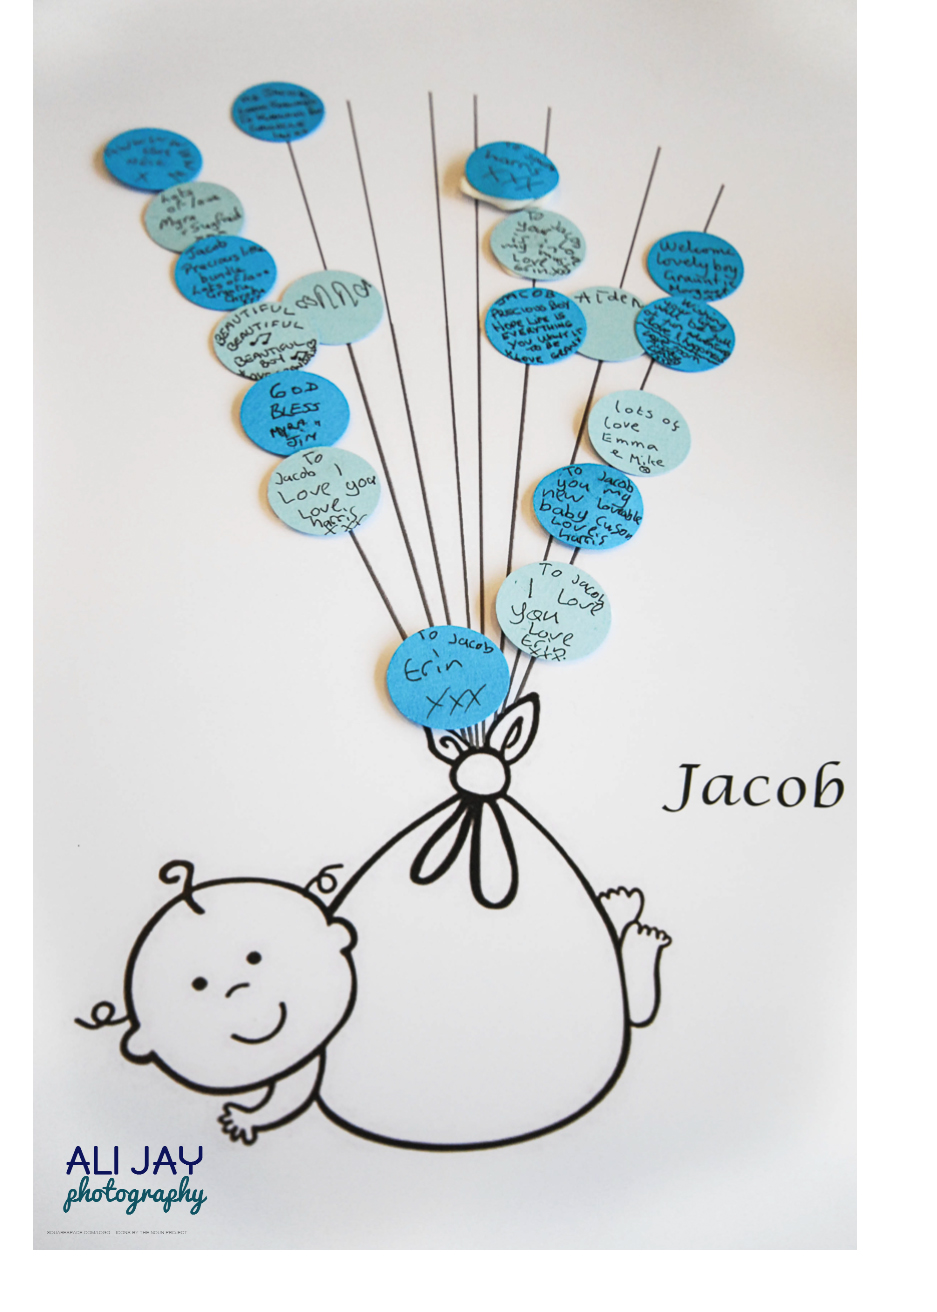 Jacob's message tree